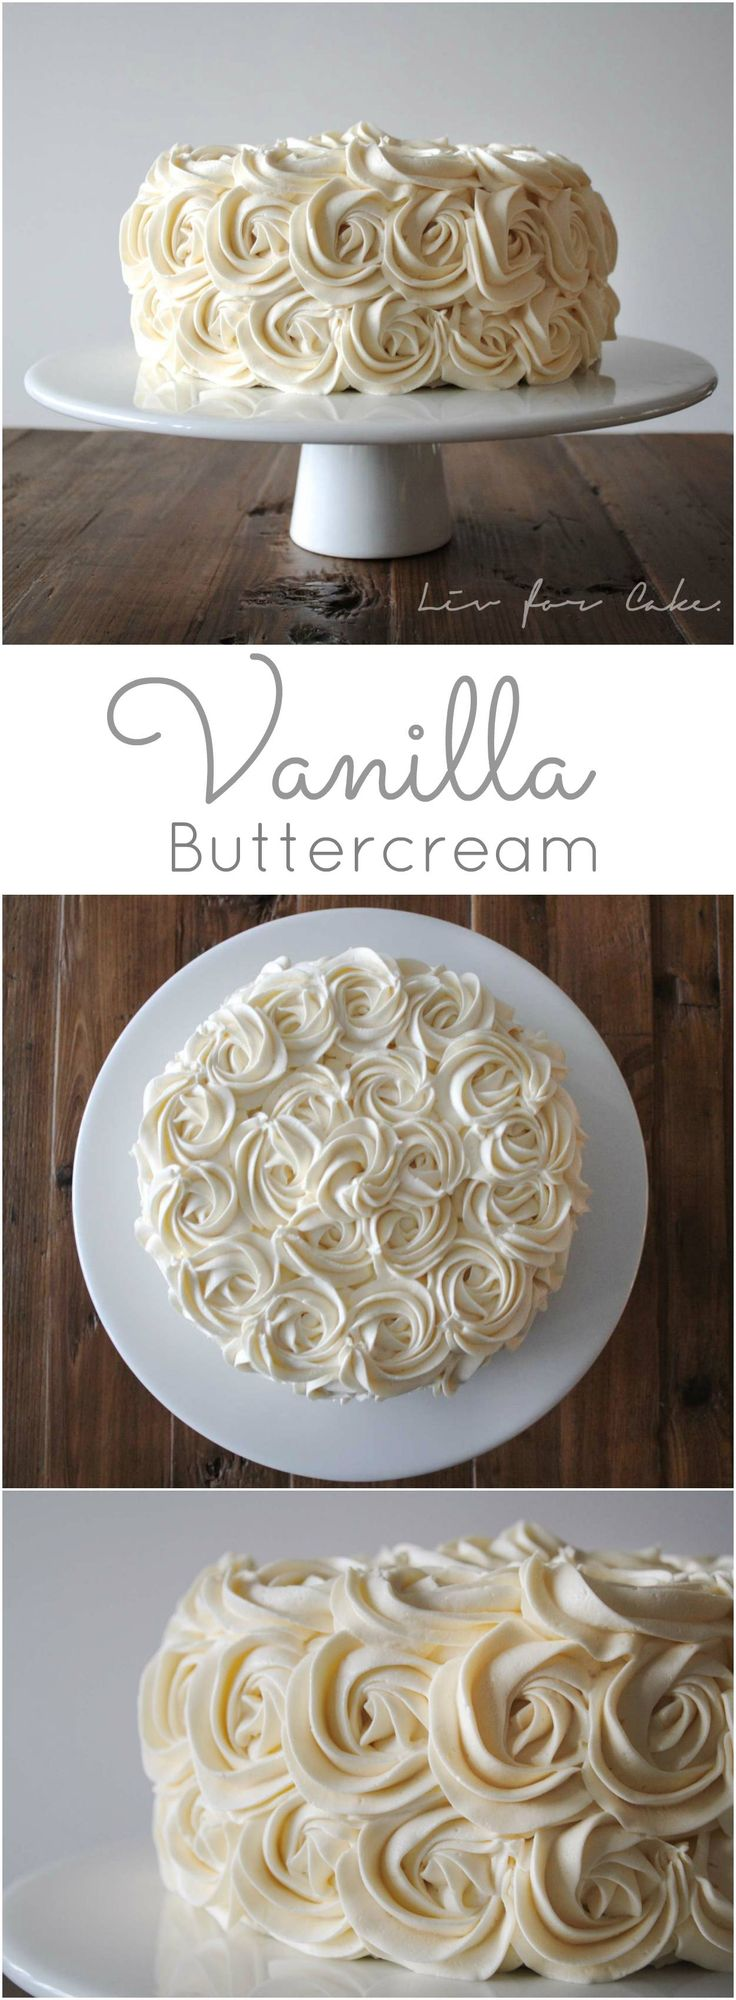 Quick, easy, and delicious vanilla buttercream recipe. | livforcake.com via @livforcake